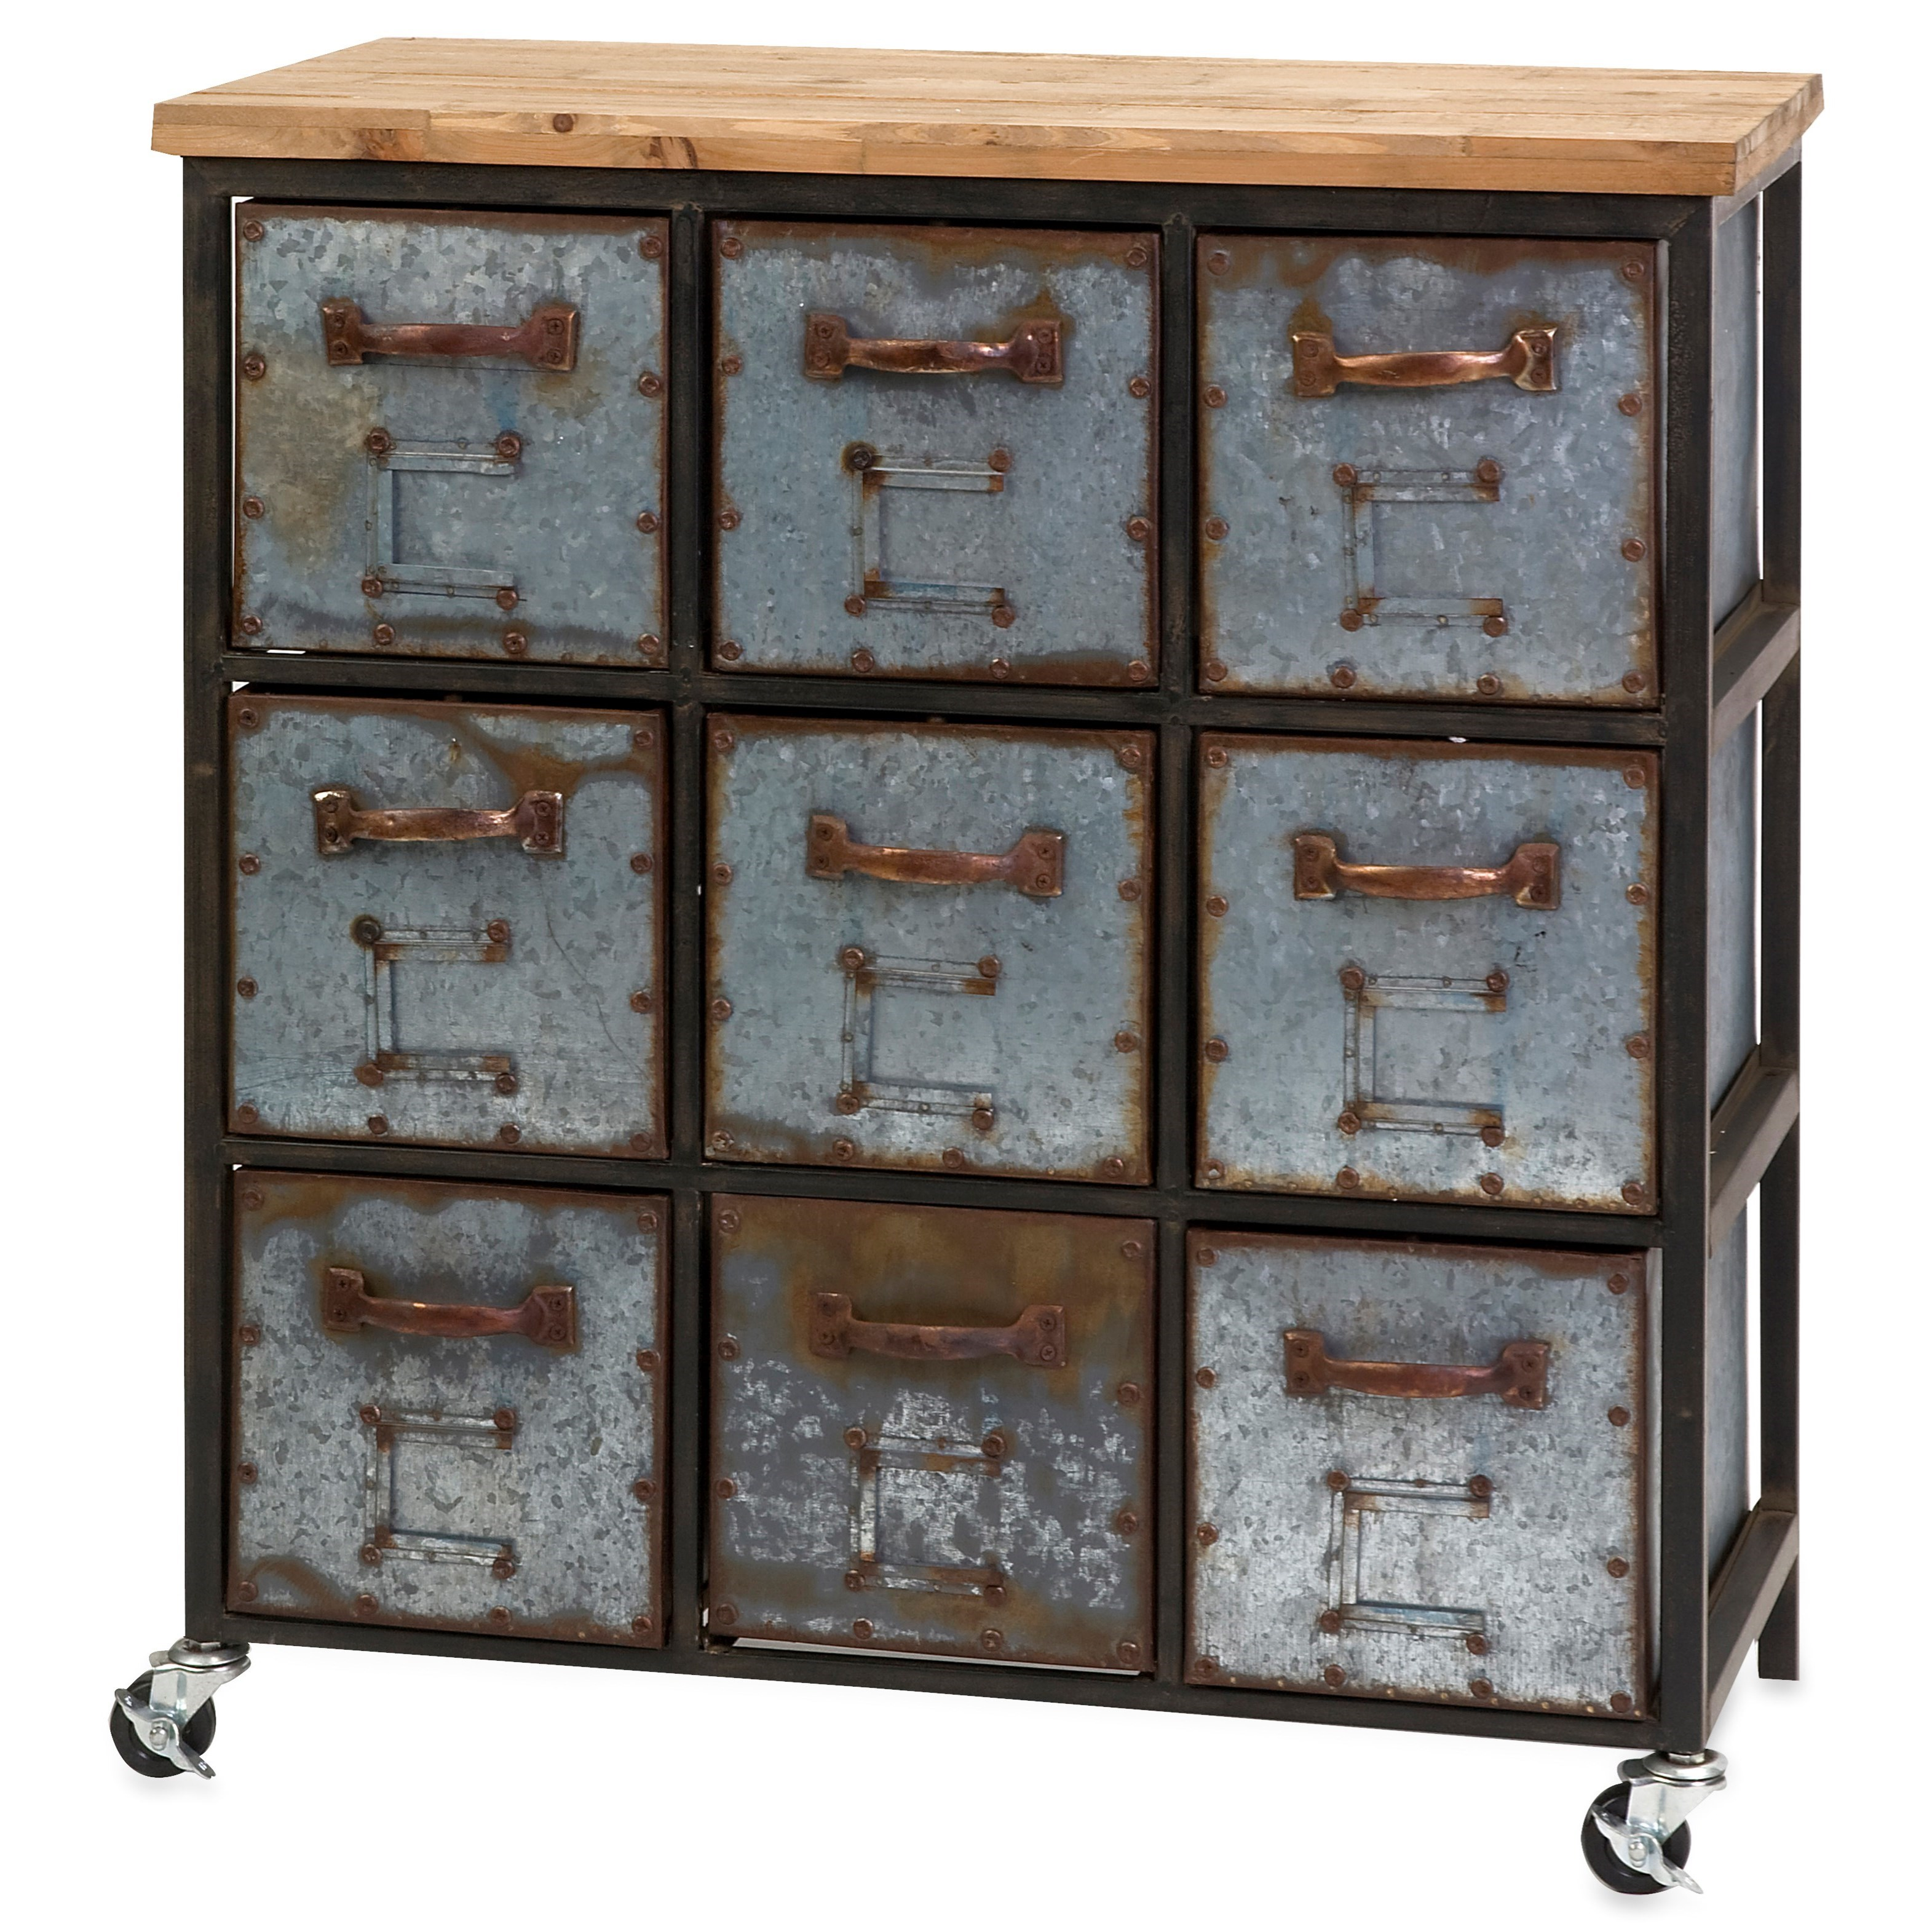 Accent Tables and Cabinets Holloway 9-Drawer Cabinet by IMAX Worldwide Home at Alison Craig Home Furnishings